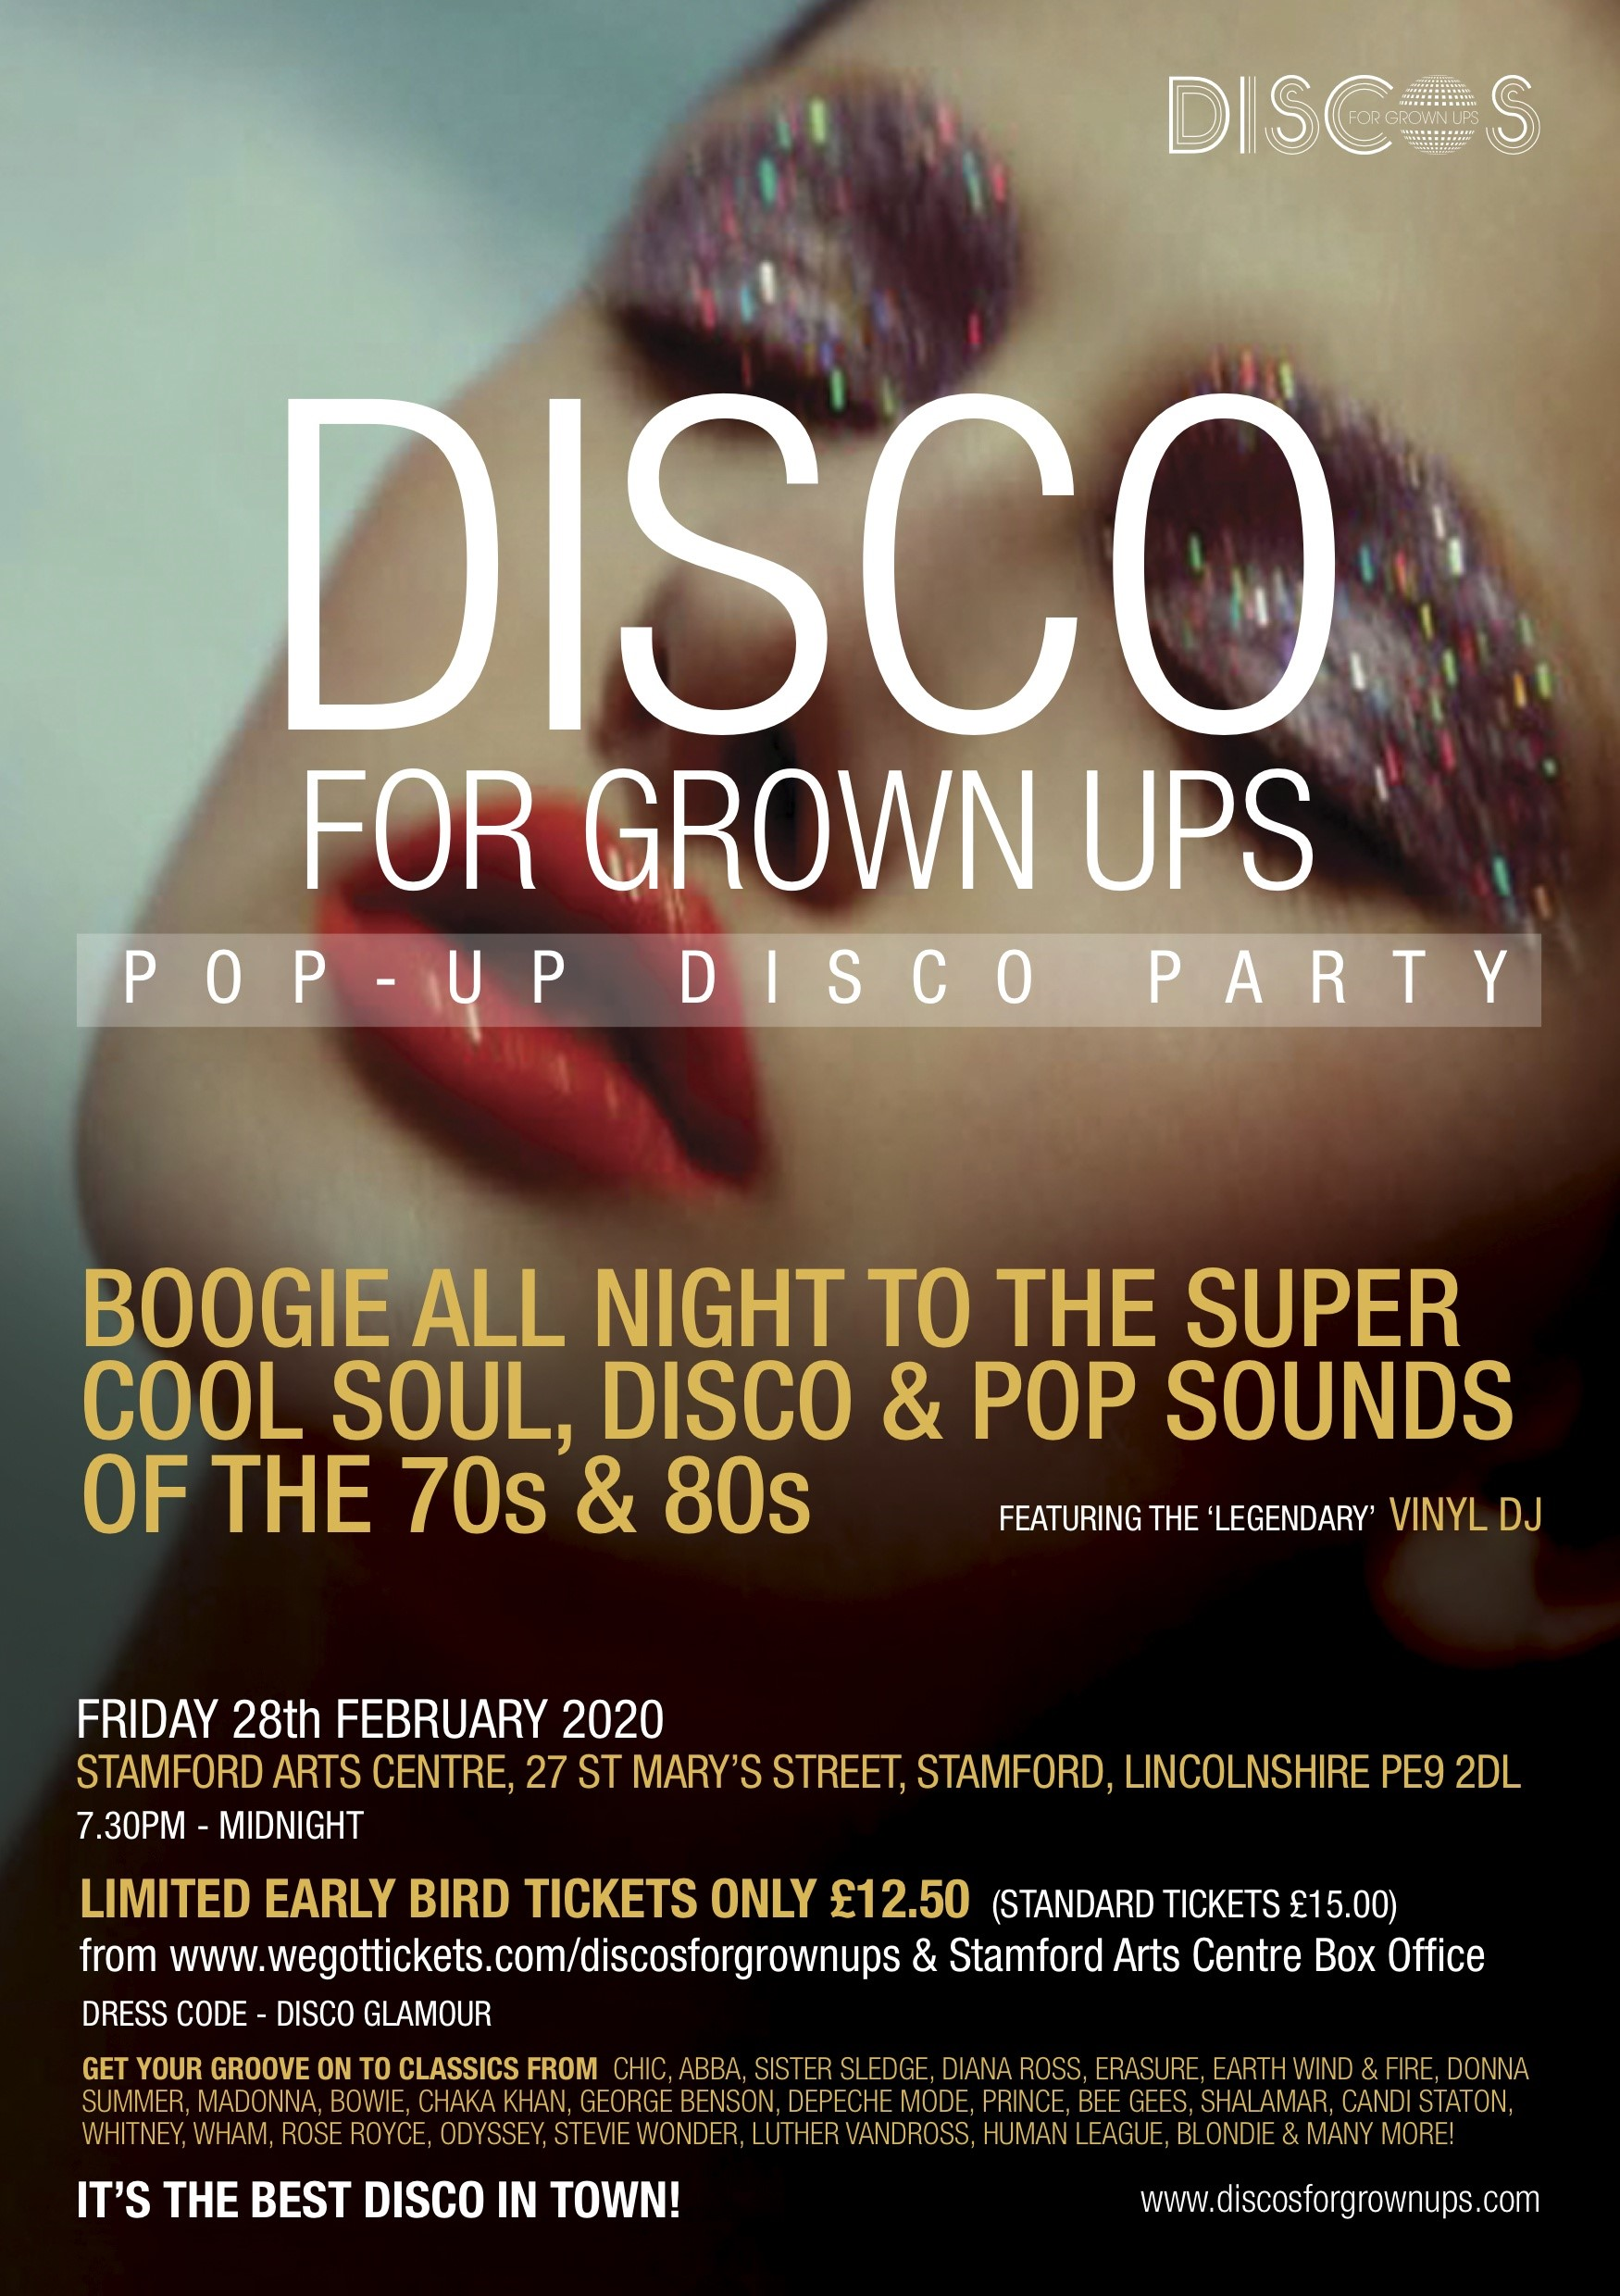 Discos for Grown Ups poster